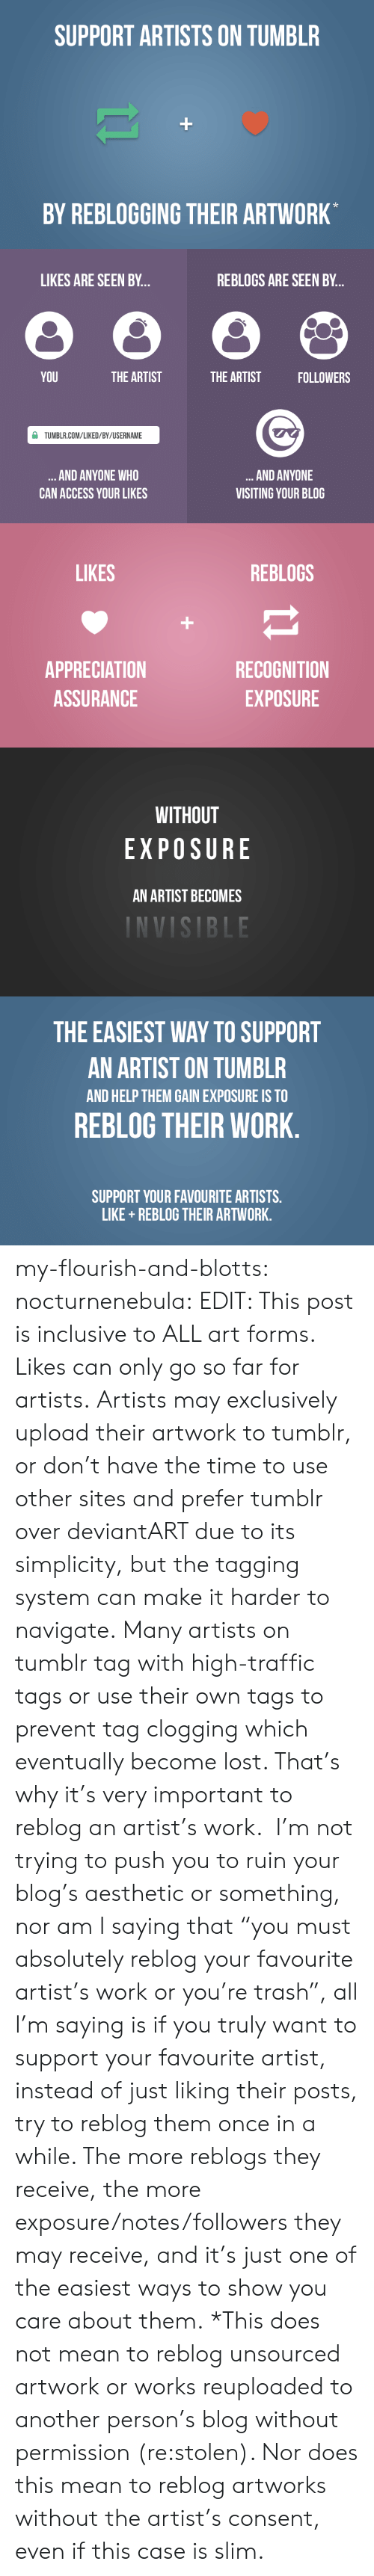 "gain: SUPPORT ARTISTS ON TUMBLR  +  BY REBLOGGING THEIR ARTWORK   LIKES ARE SEEN BY...  REBLOGS ARE SEEN BY...  YOU  THE ARTIST  THE ARTIST  FOLLOWERS  TUMBLR.COM/LIKED/BY/USERNAME  ...AND ANYONE  ...AND ANYONE WHO  CAN ACCESS YOUR LIKES  VISITING YOUR BLOG   LIKES  REBLOGS  APPRECIATION  RECOGNITION  ASSURANCE  EXPOSURE  +   WITHOUT  EXPOSURE  AN ARTIST BECOMES  INVISIBLE   THE EASIEST WAY TO SUPPORT  AN ARTIST ON TUMBLR  AND HELP THEM GAIN EXPOSURE IS TO  REBLOG THEIR WORK.  SUPPORT YOUR FAVOURITE ARTISTS.  LIKE+REBLOG THEIR ARTWORK. my-flourish-and-blotts: nocturnenebula‌:  EDIT: This post is inclusive to ALL art forms. Likes can only go so far for artists. Artists may exclusively upload their artwork to tumblr, or don't have the time to use other sites and prefer tumblr over deviantART due to its simplicity, but the tagging system can make it harder to navigate. Many artists on tumblr tag with high-traffic tags or use their own tags to prevent tag clogging which eventually become lost. That's why it's very important to reblog an artist's work.  I'm not trying to push you to ruin your blog's aesthetic or something, nor am I saying that ""you must absolutely reblog your favourite artist's work or you're trash"", all I'm saying is if you truly want to support your favourite artist, instead of just liking their posts, try to reblog them once in a while. The more reblogs they receive, the more exposure/notes/followers they may receive, and it's just one of the easiest ways to show you care about them. *This does not mean to reblog unsourced artwork or works reuploaded to another person's blog without permission (re:stolen). Nor does this mean to reblog artworks without the artist's consent, even if this case is slim."